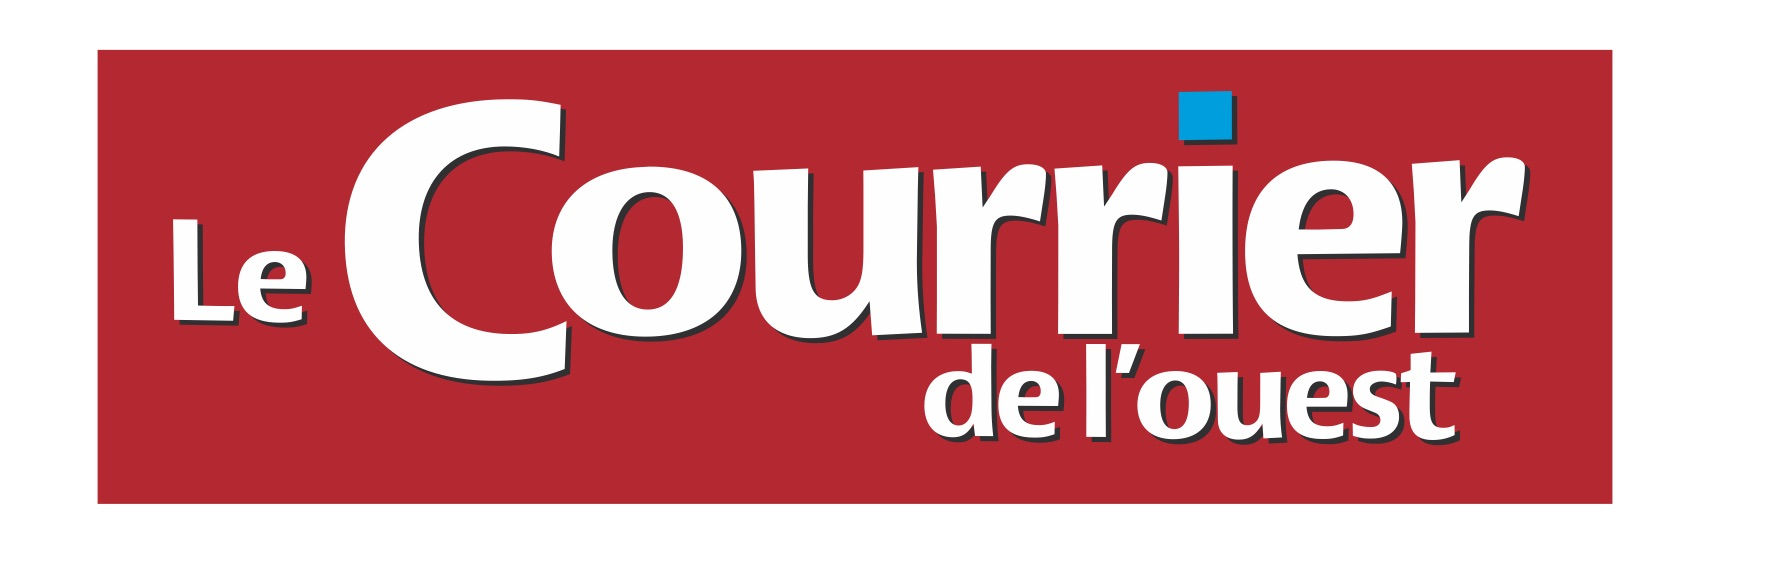 LOGO LE COURRIER DE LOUEST